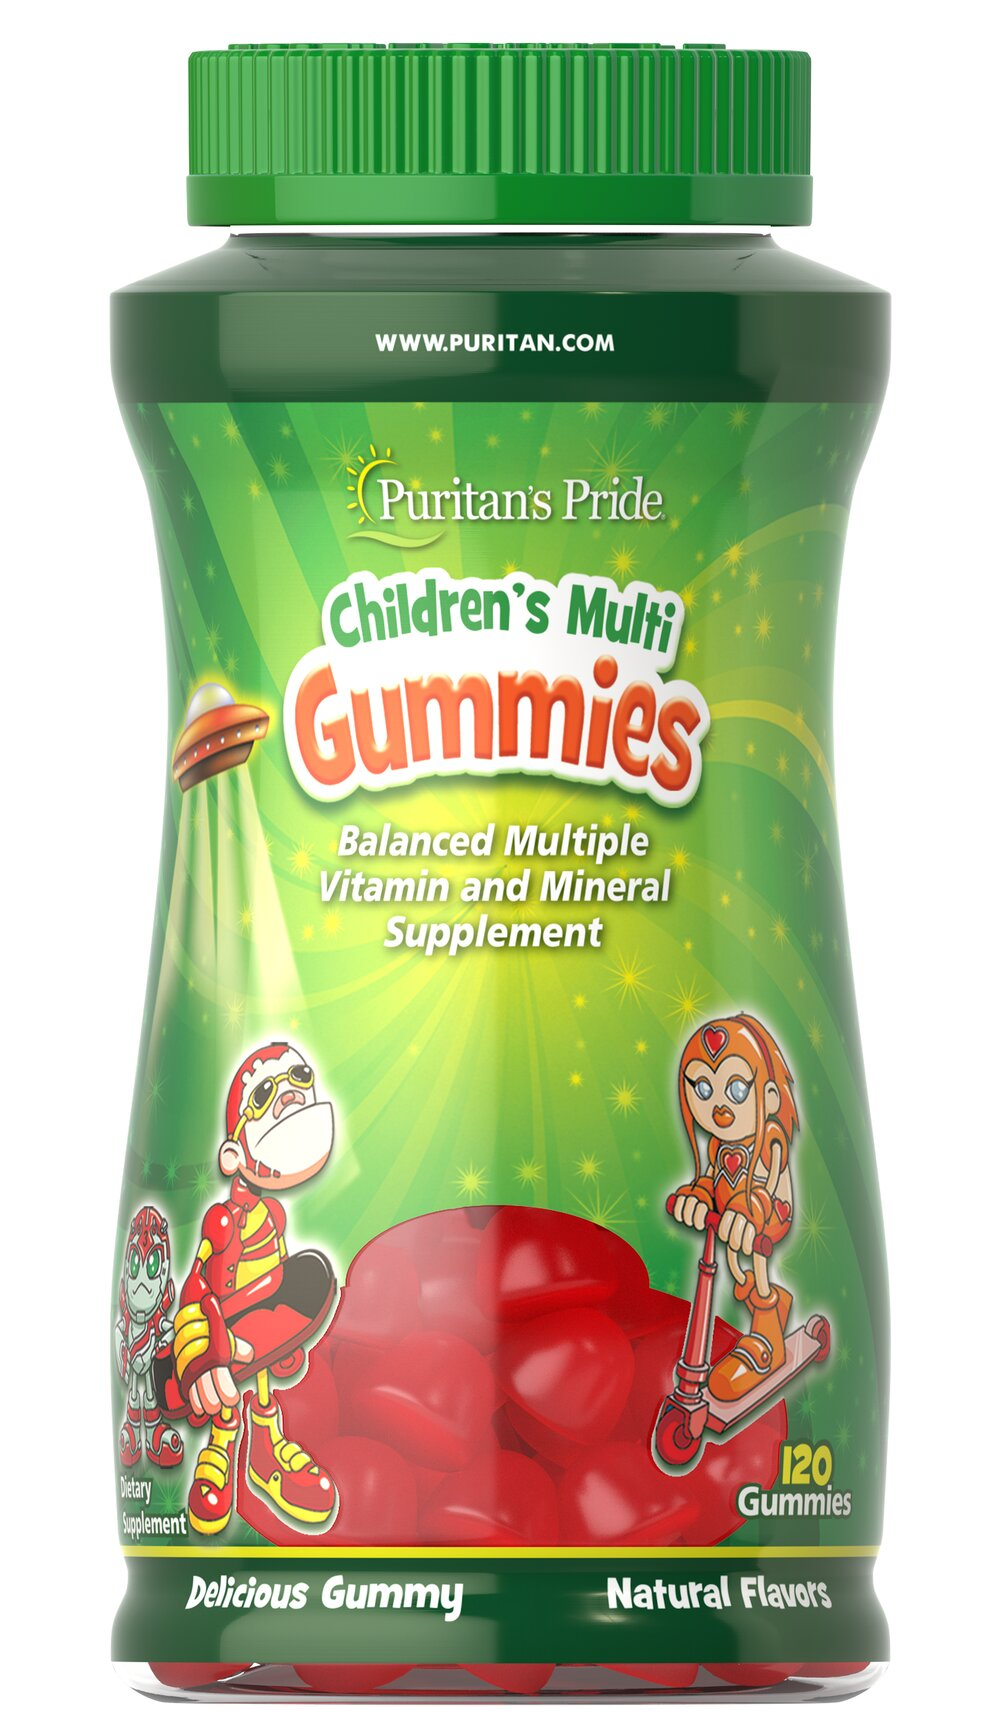 Children's Multivitamins & Mineral Gummies <p>These multivitamins gummies are packed with essential vitamins and minerals necessary for your child's healthy growth and development.** Included are Vitamin D for the bones, and Vitamins C and E for the immune system.**</p> 120 Gummies  $18.99